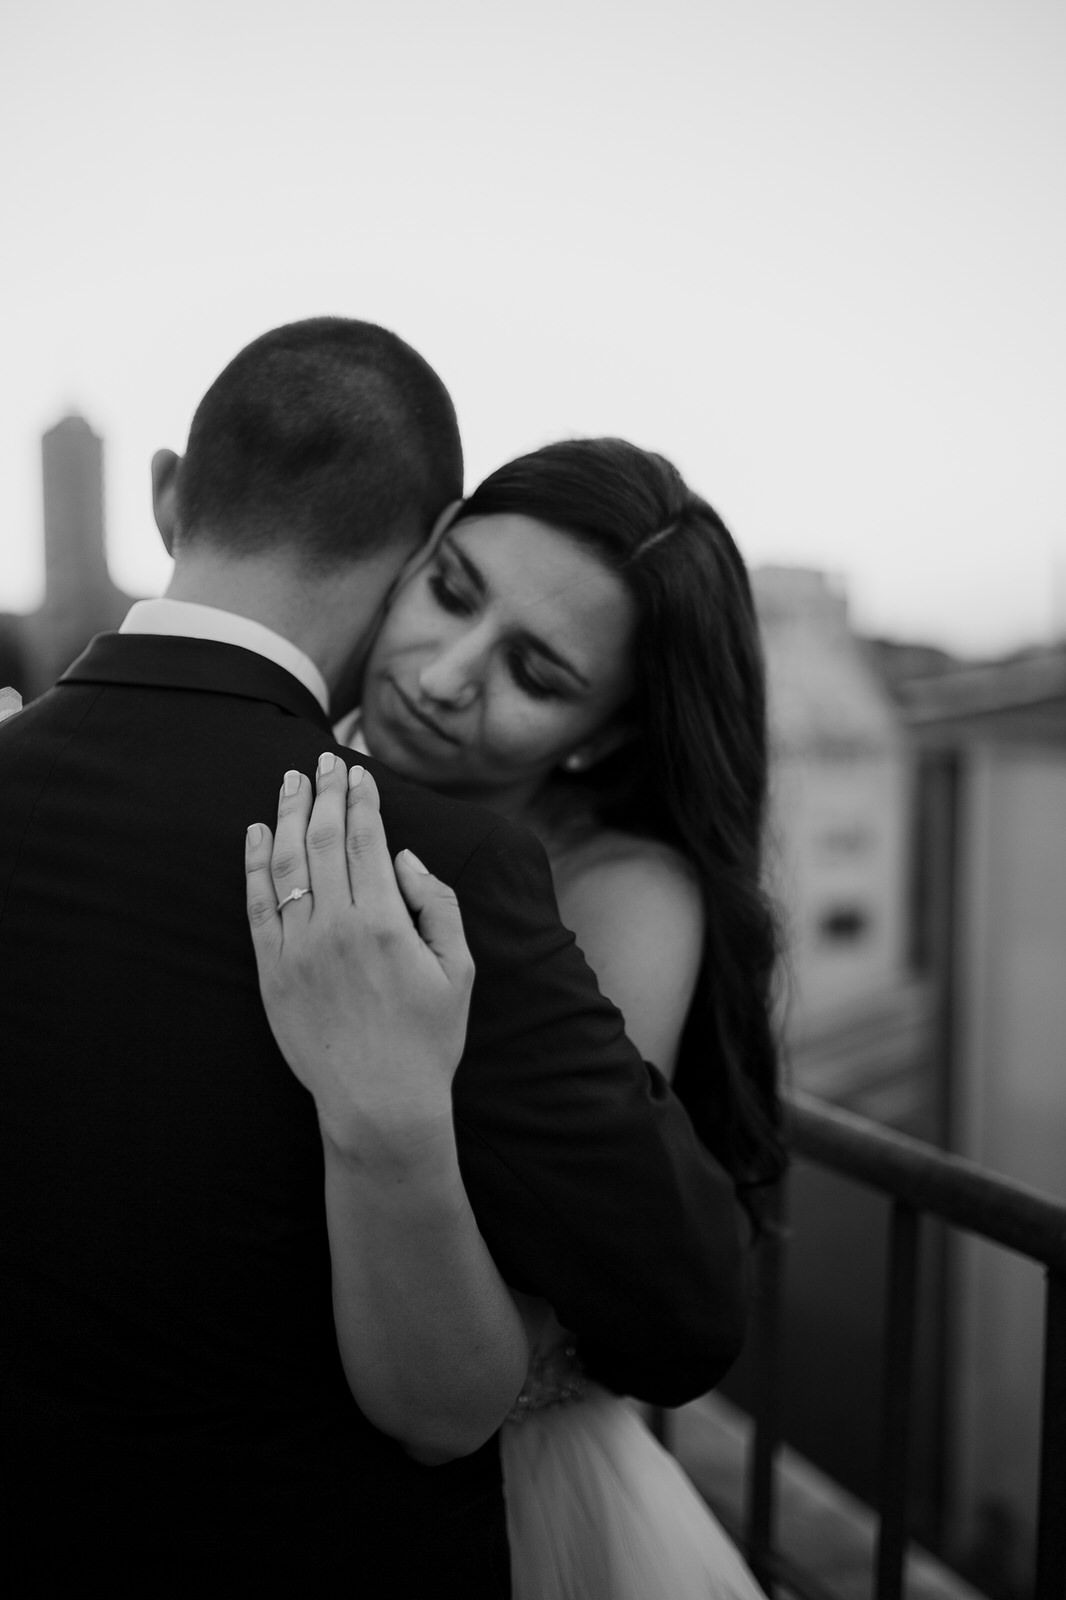 Bride and groom hugging each other on a rooftop in Paris